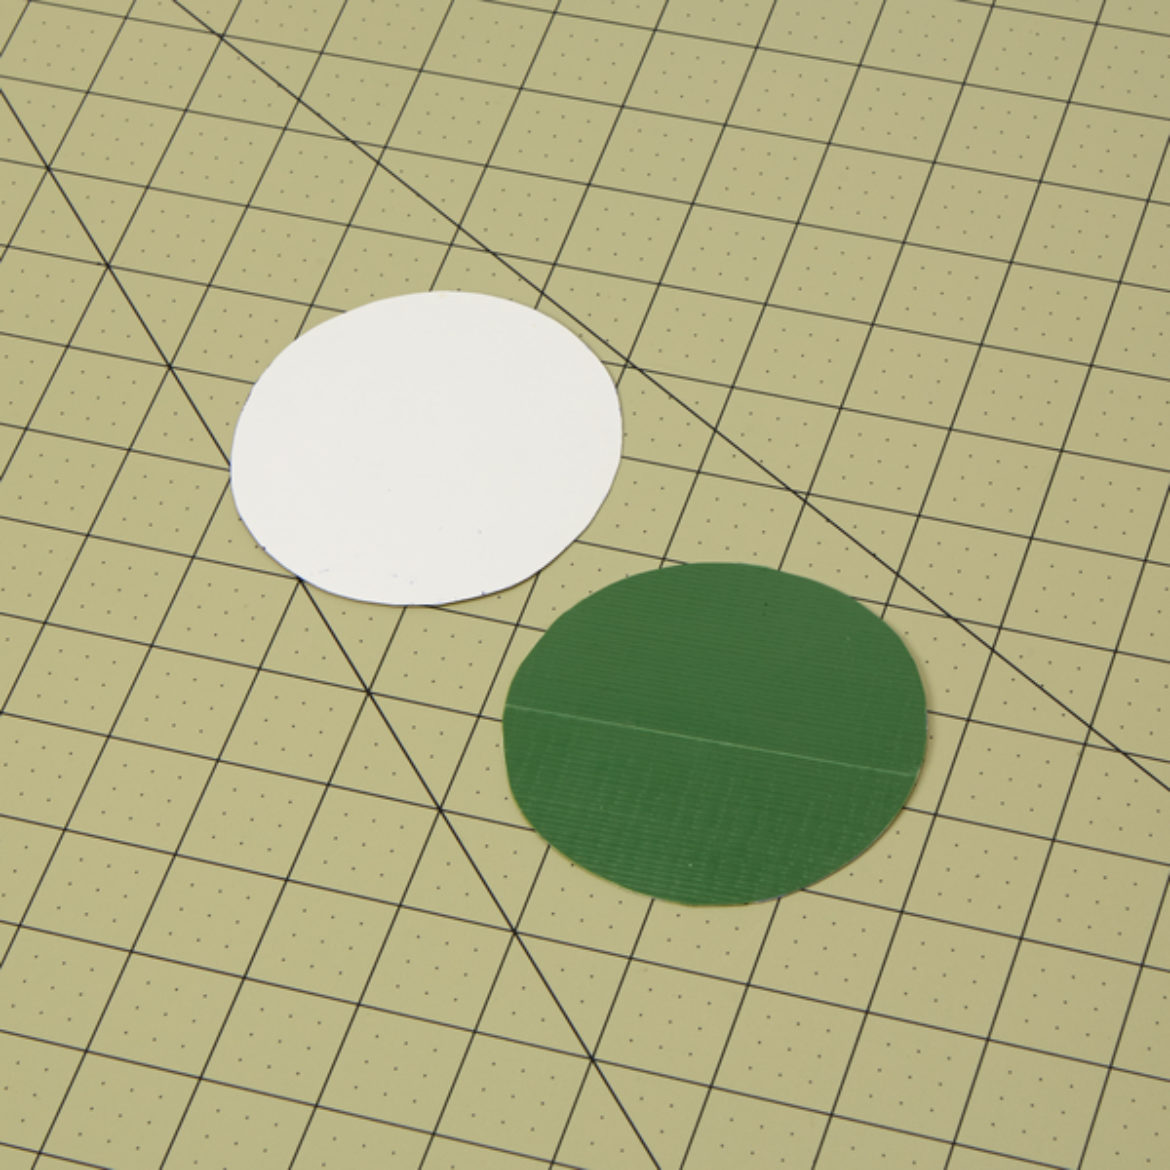 Circles in the same shape and sze as the opening of the larger side of the flared cylinder from the previous step